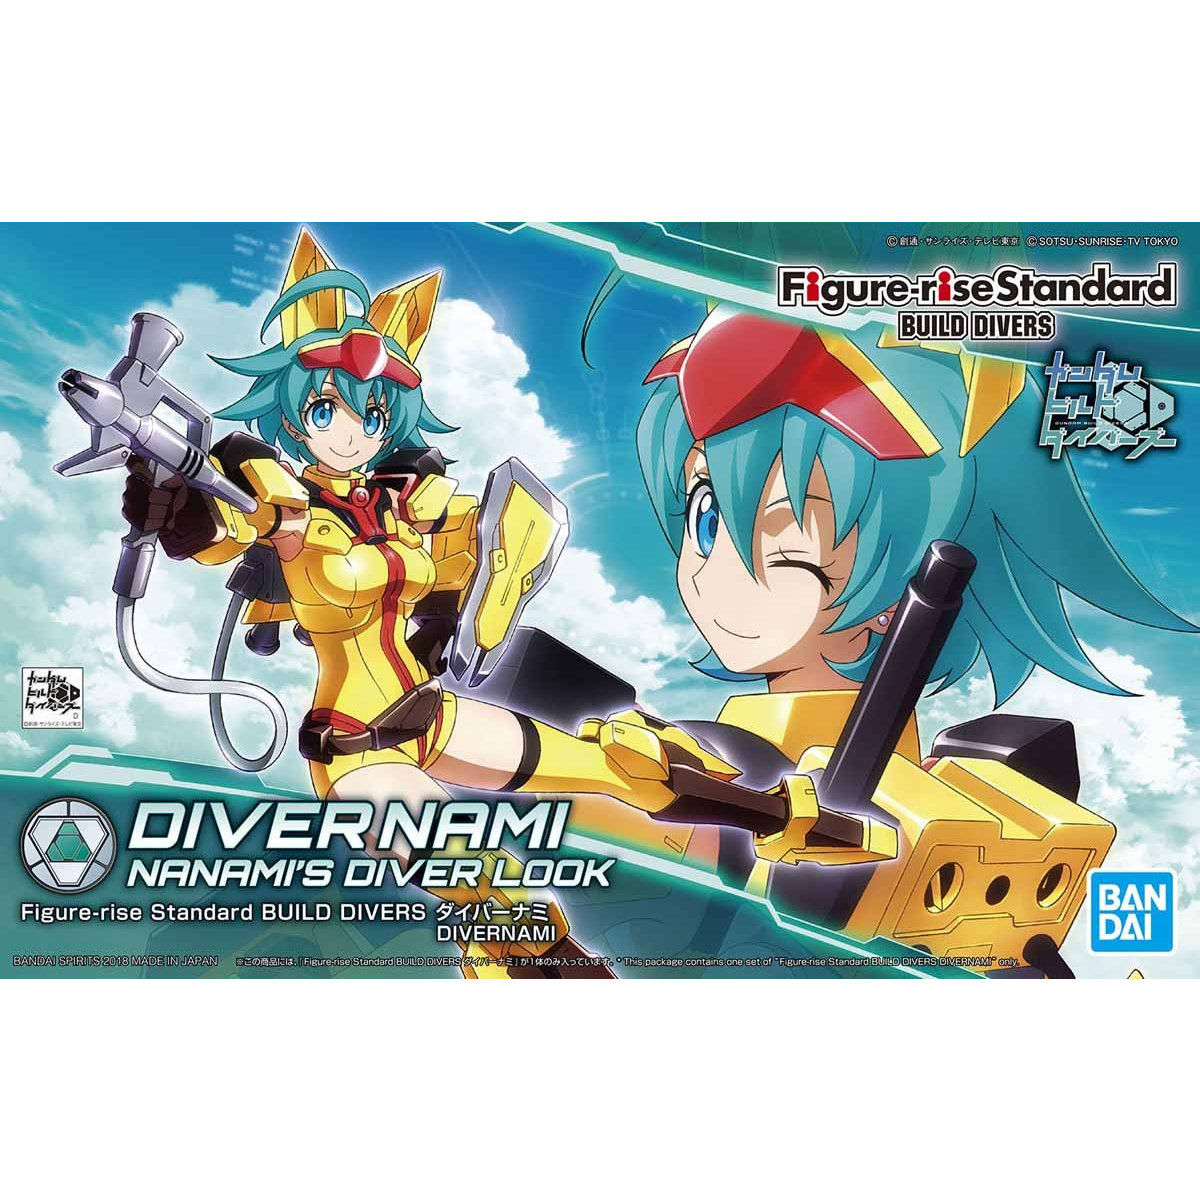 Figure-rise Standard BUILD DIVERS ダイバーナミ 12